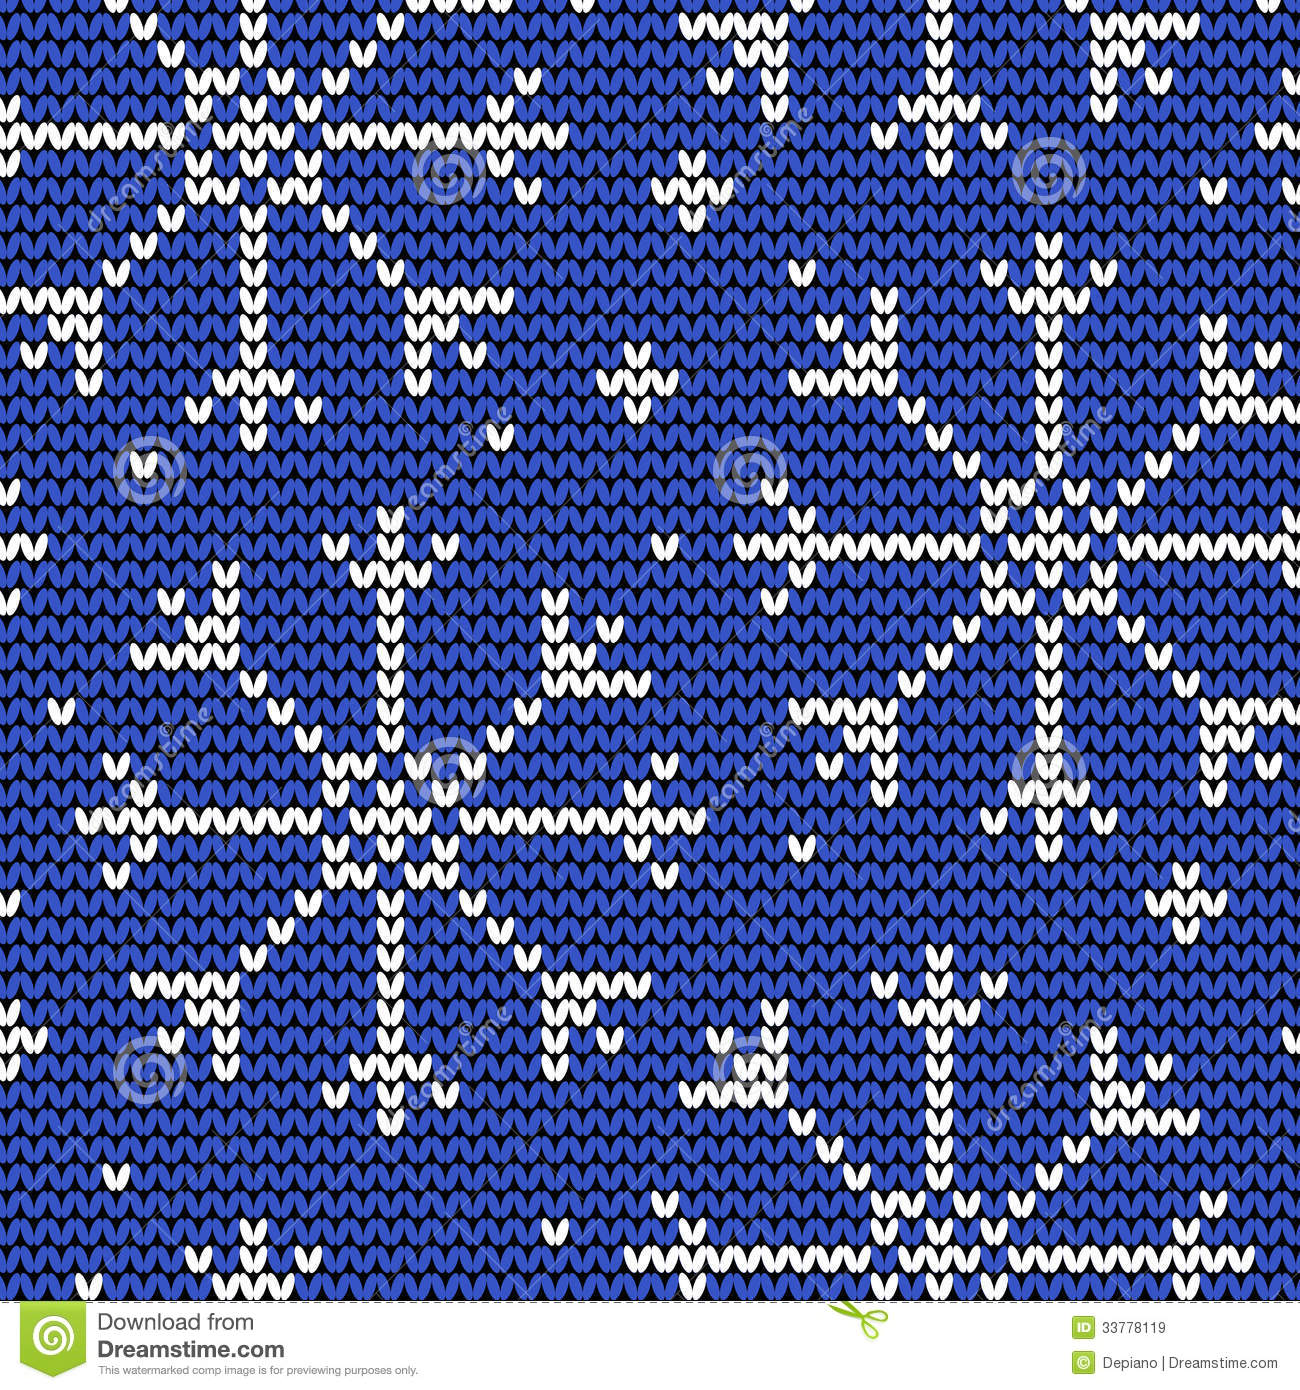 Knitted Snowflake Patterns : Knitted Seamless Winter Pattern With Snowflakes Royalty Free Stock Images - I...